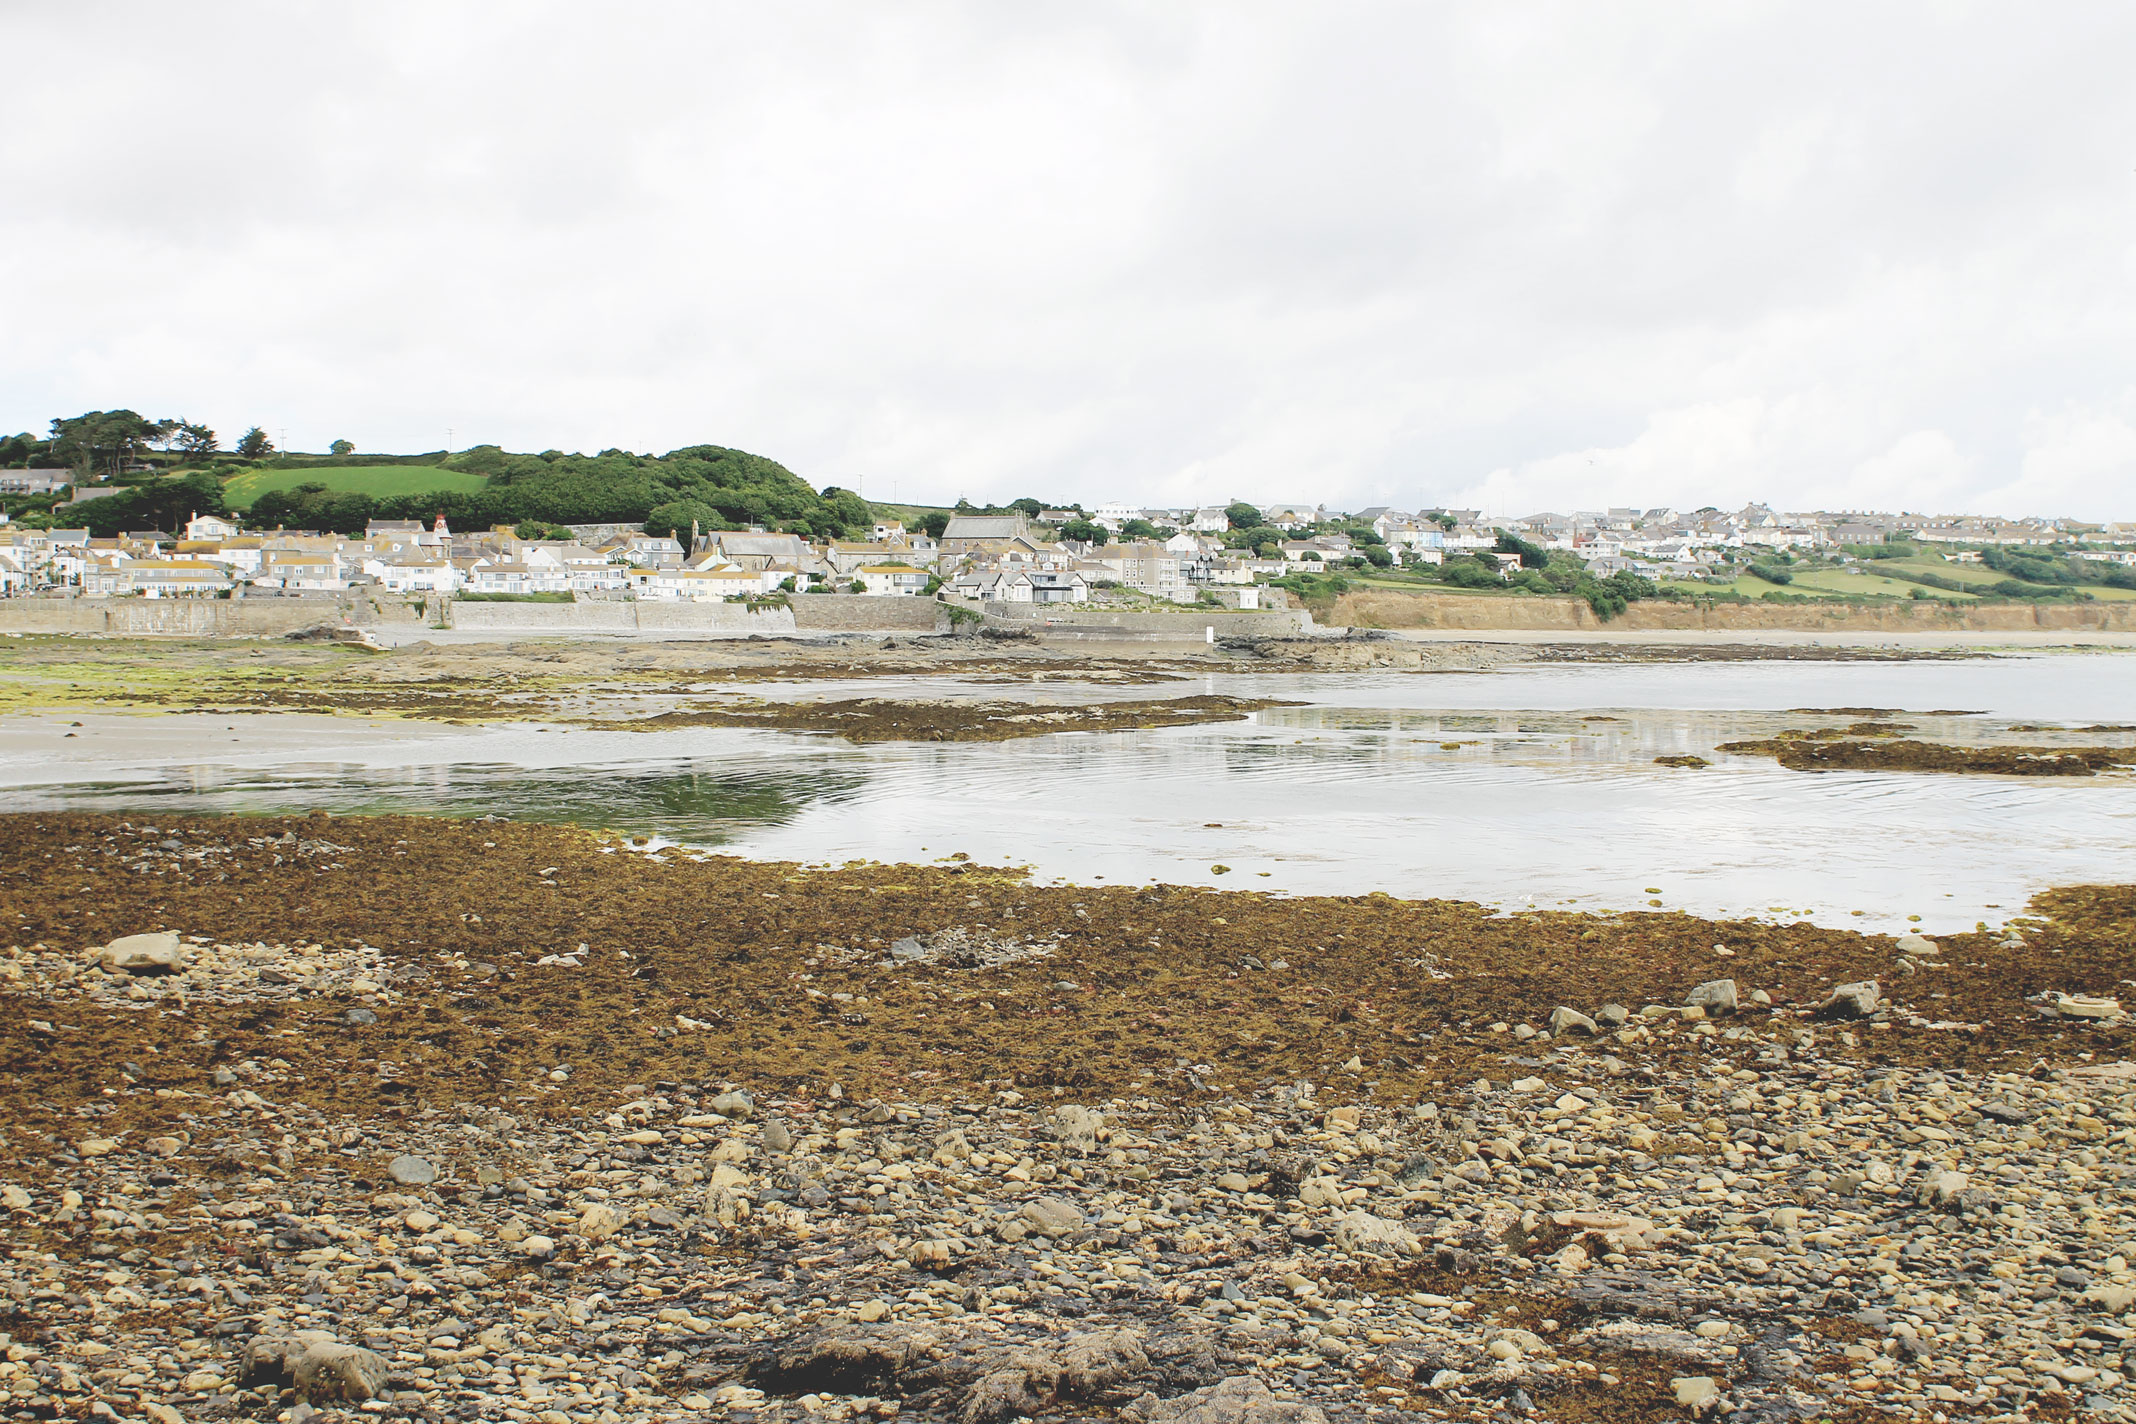 London to Cornwall Holidays - St Michael's Mount - Travel UK - Styleat30 Blog - 11